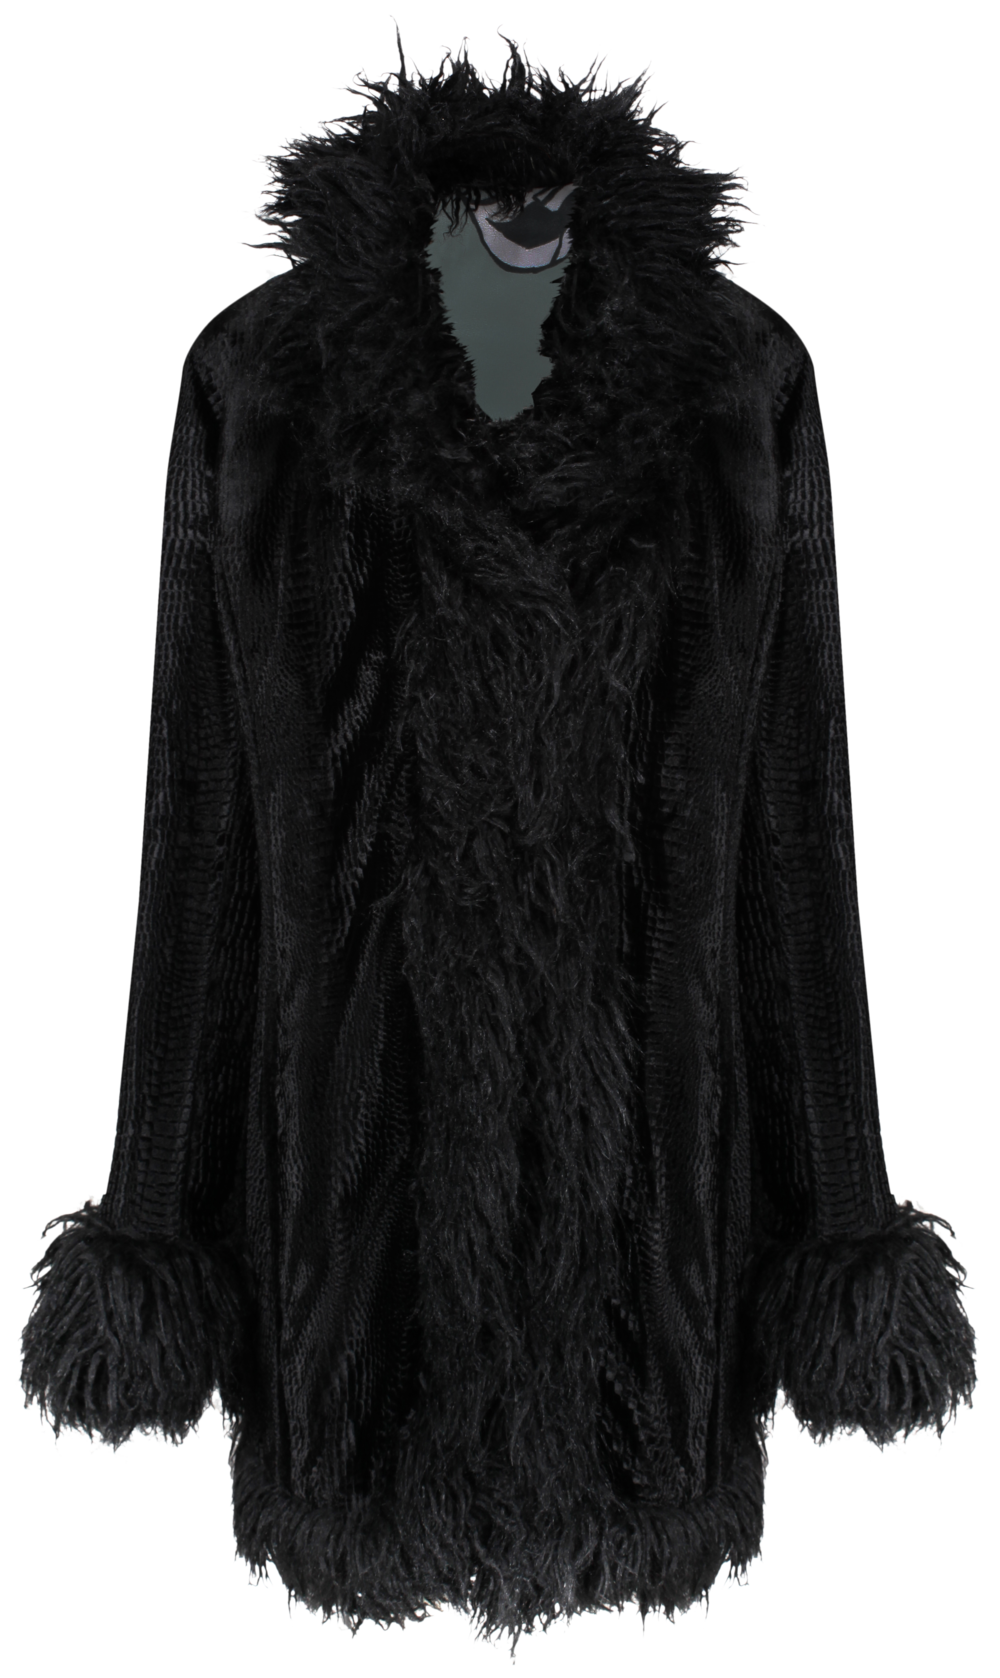 Himalia Coat Black TEXTURE x IRIS - SHOP NOW